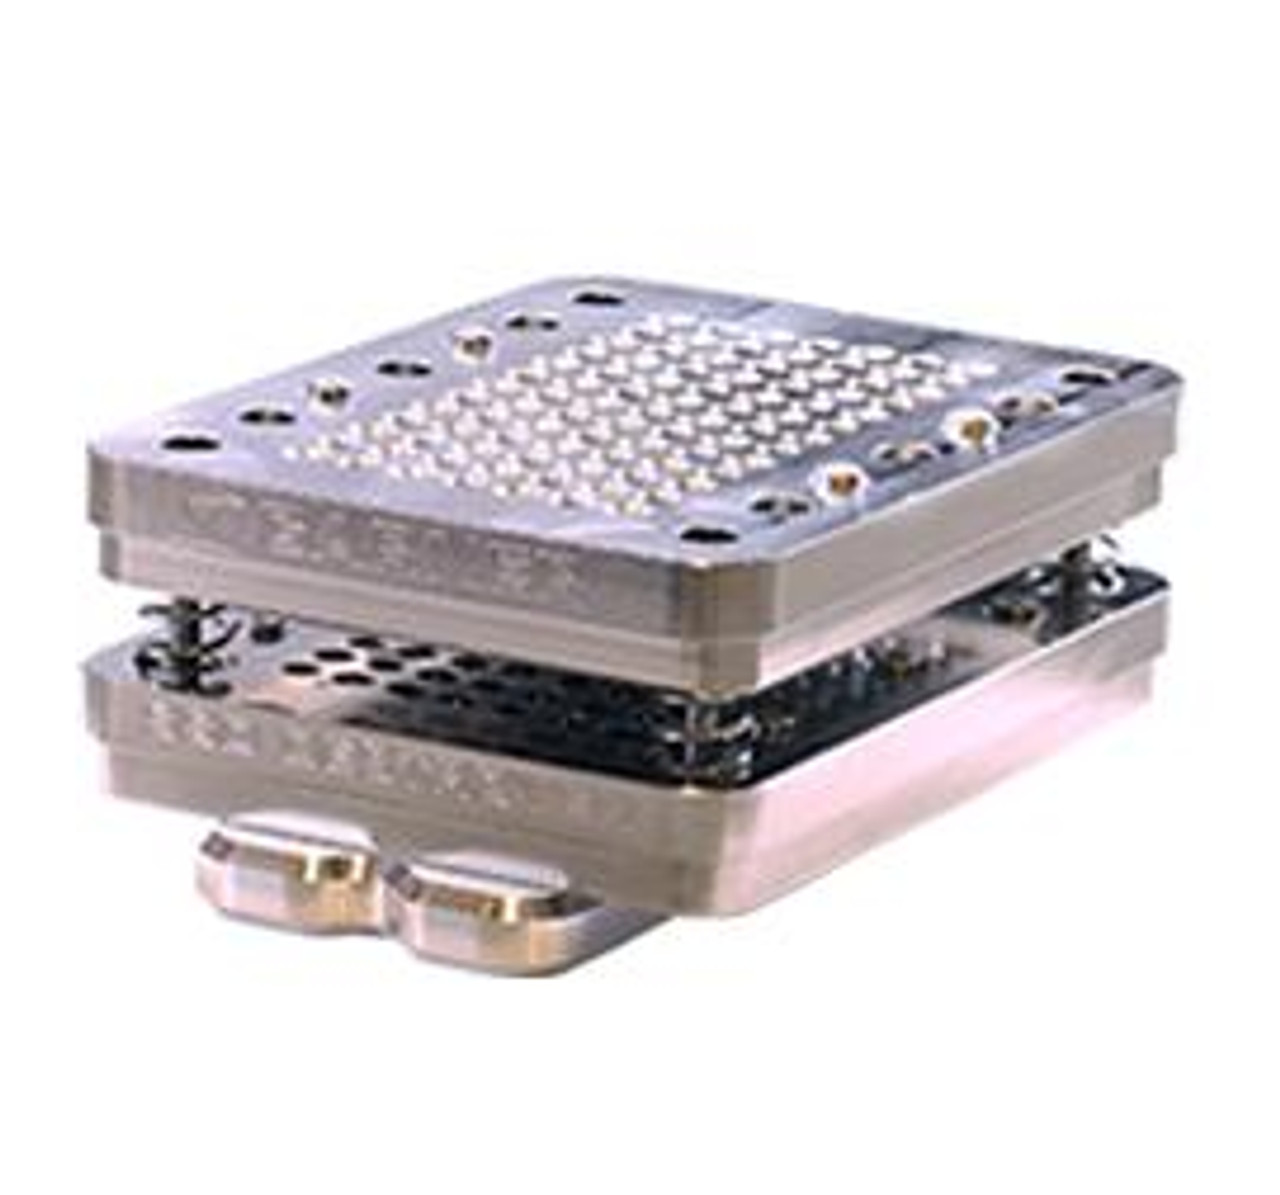 PD-5 SSD-1 Option to destroy Solid State Drives, flash drives, USB thumb drives, mobile phones and SSHD controller boards